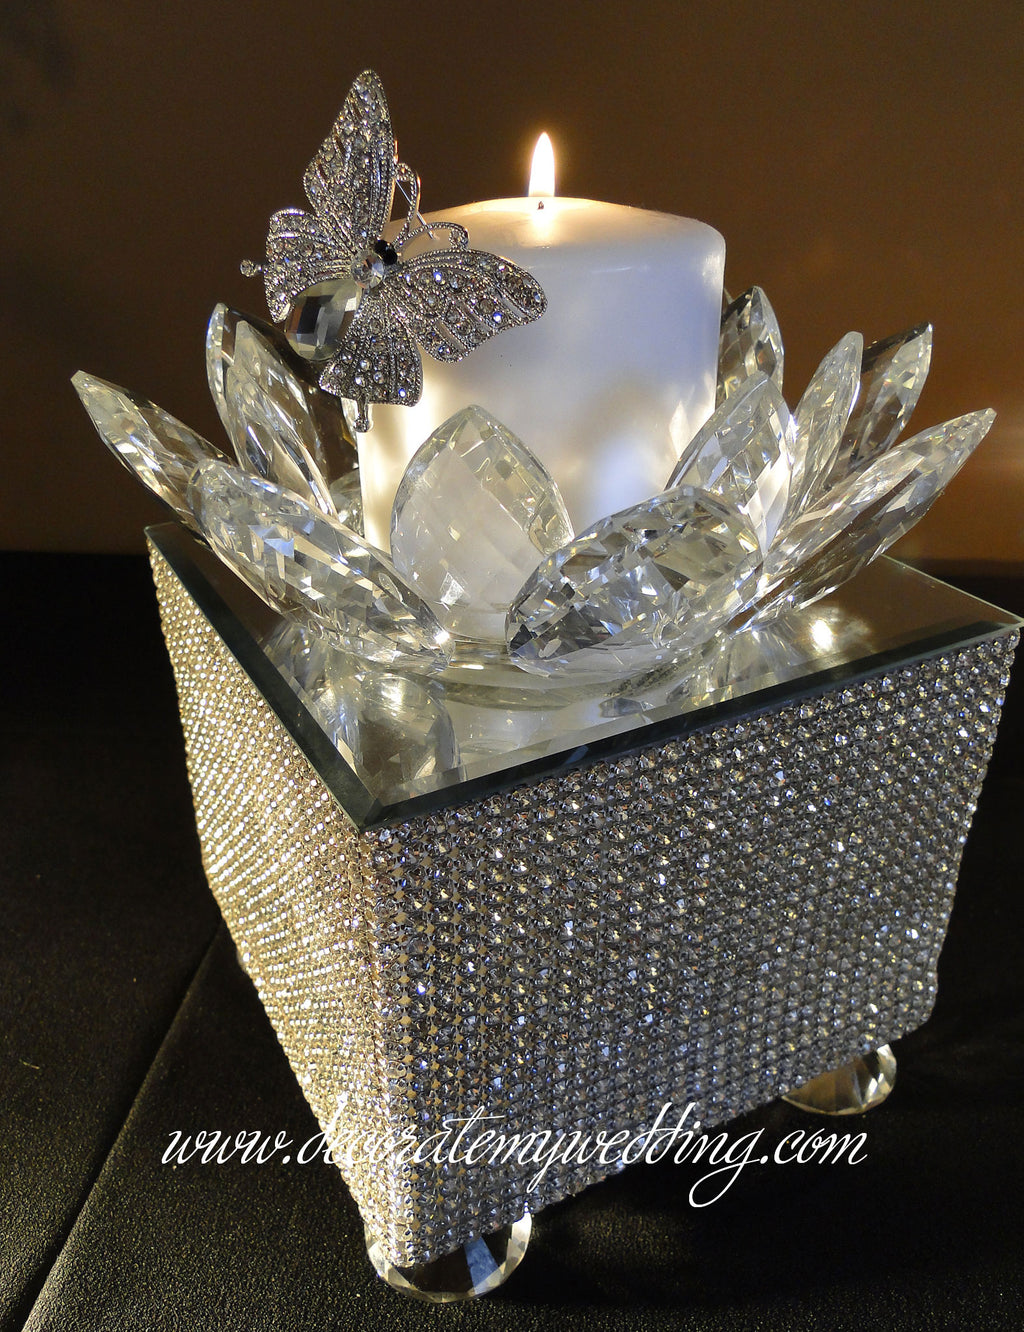 The square format of this wedding reception centerpiece is completely covered with Swarovski rhinestones.